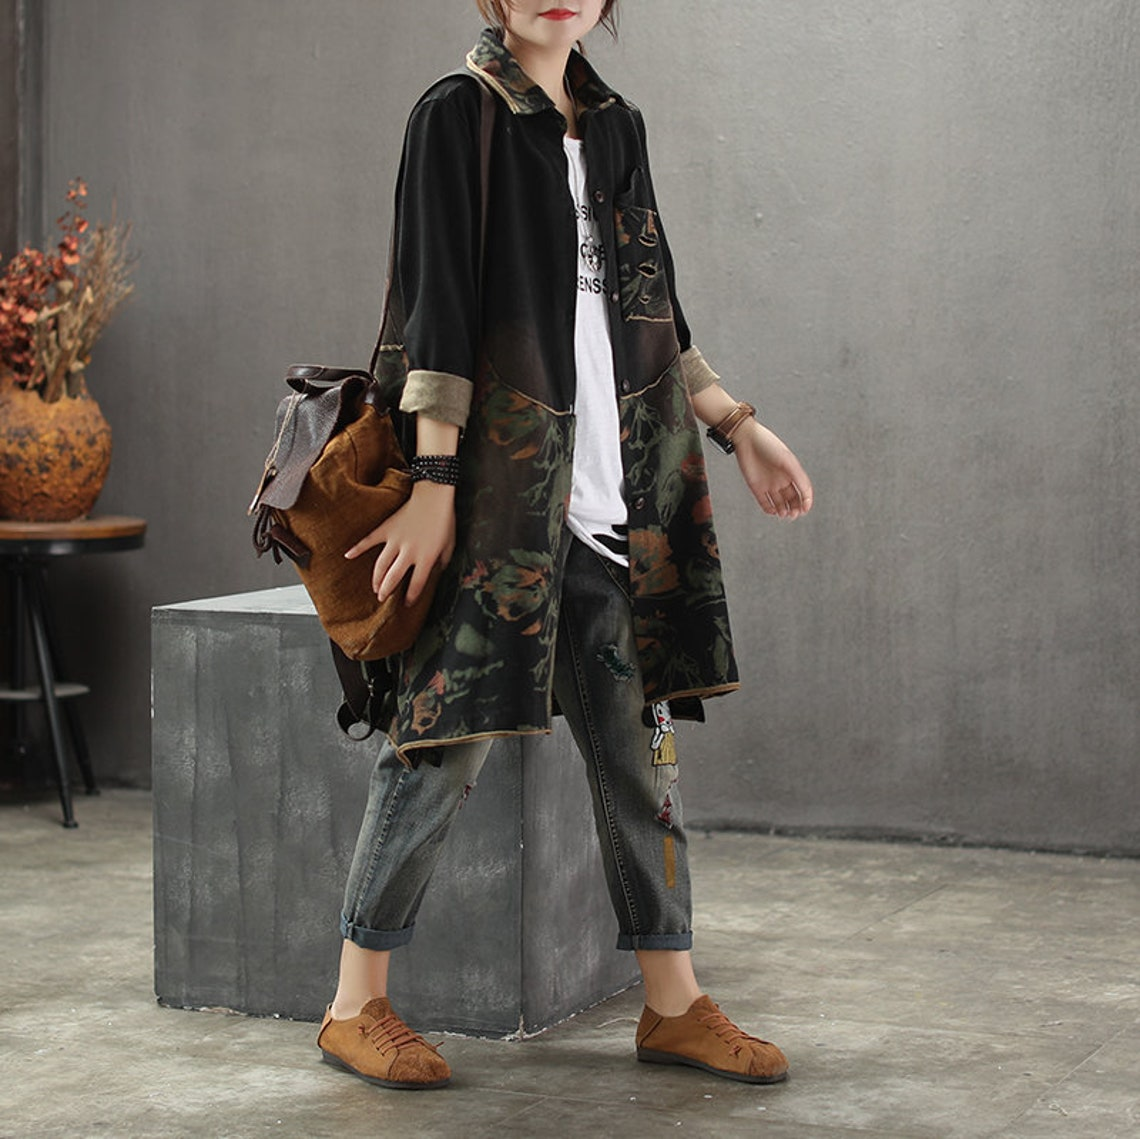 Women's Long-sleeved Terry Cotton Tops, Old-fashioned Vintage Retro Stitching Jackets, Patch-printed Coat, Mid-length Coat